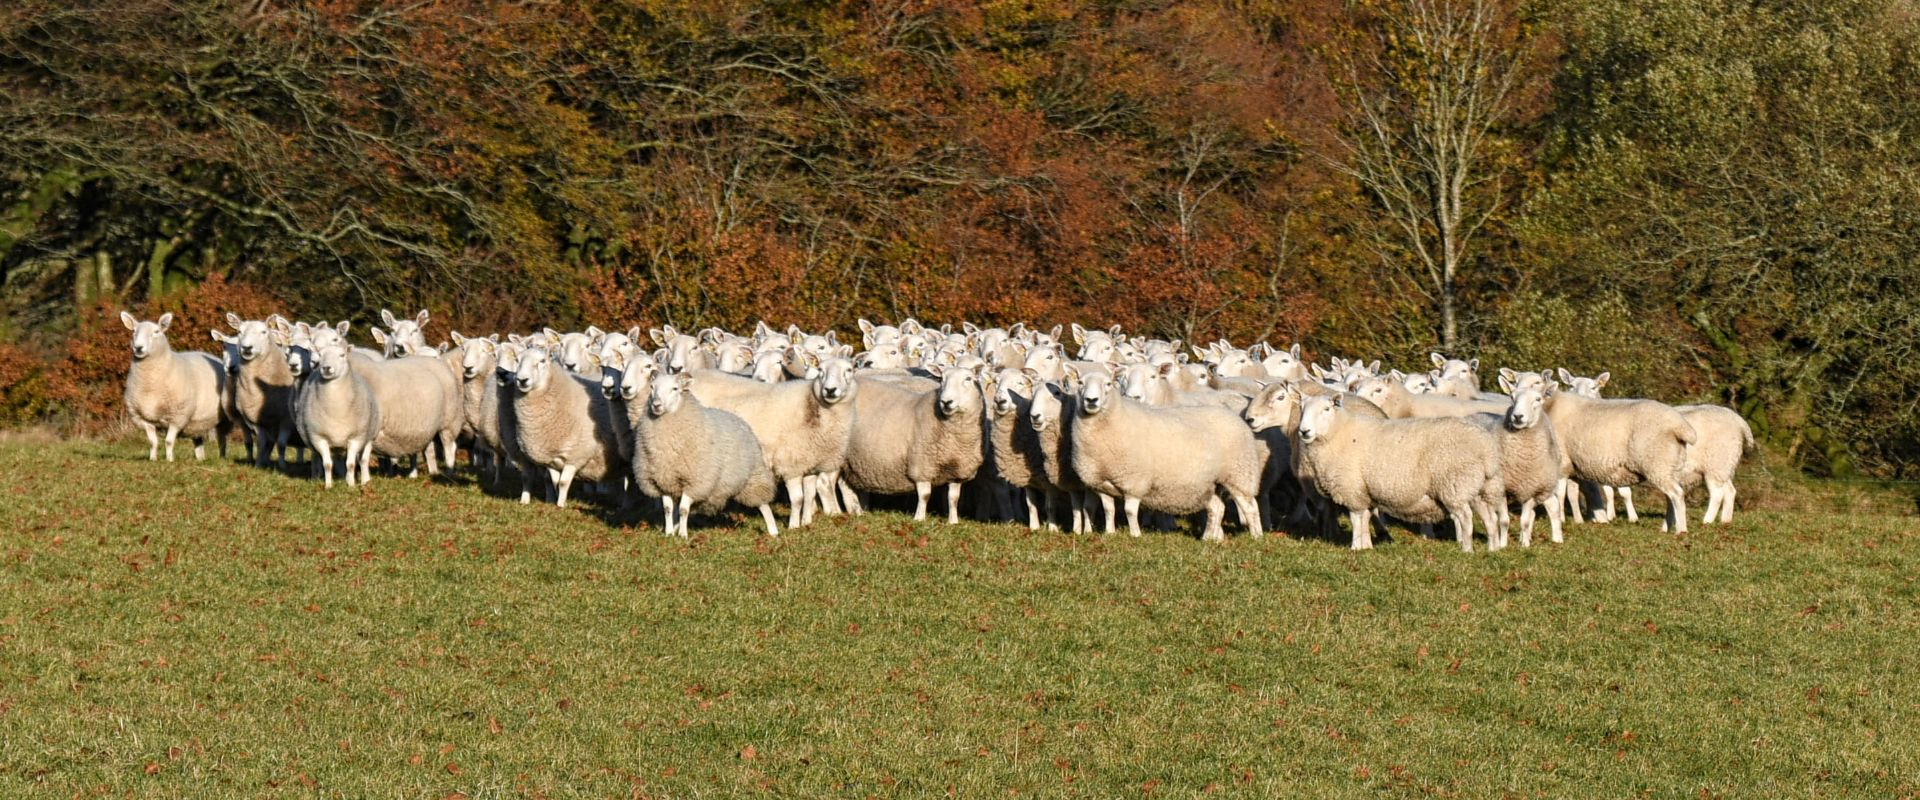 A flock of sheep having been herded